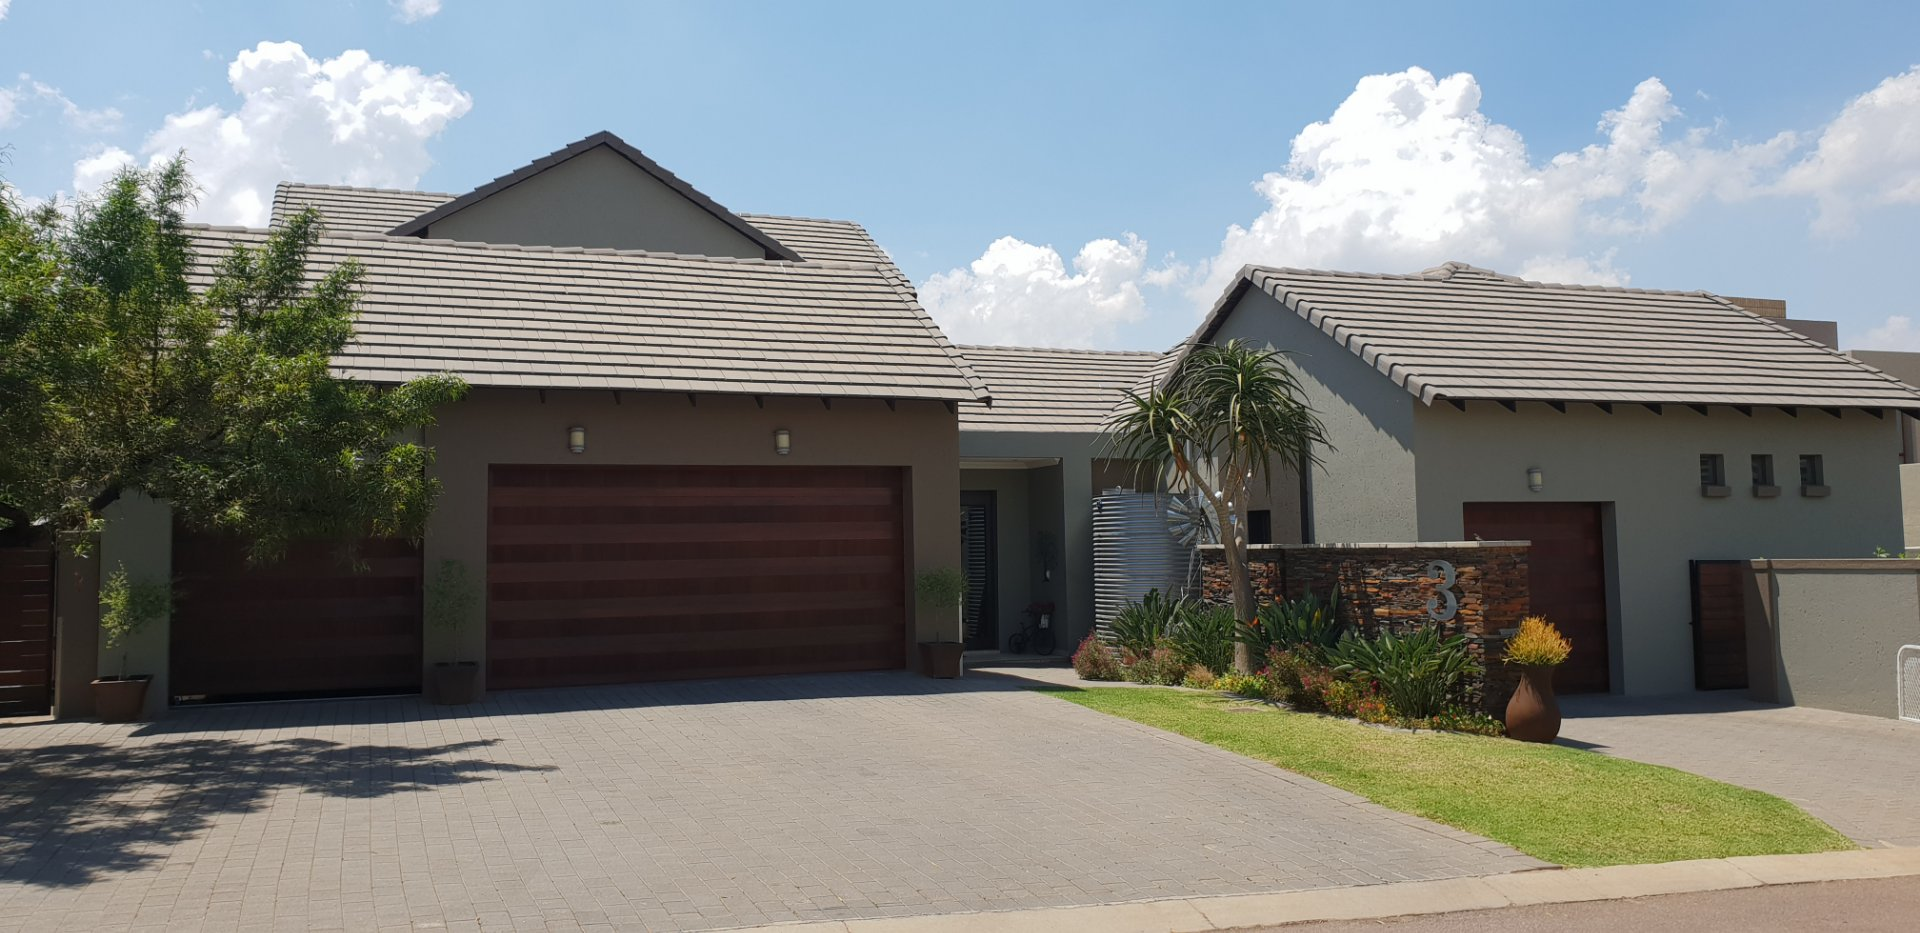 Centurion, Midlands Estate Property  | Houses For Sale Midlands Estate, Midlands Estate, House 4 bedrooms property for sale Price:5,700,000